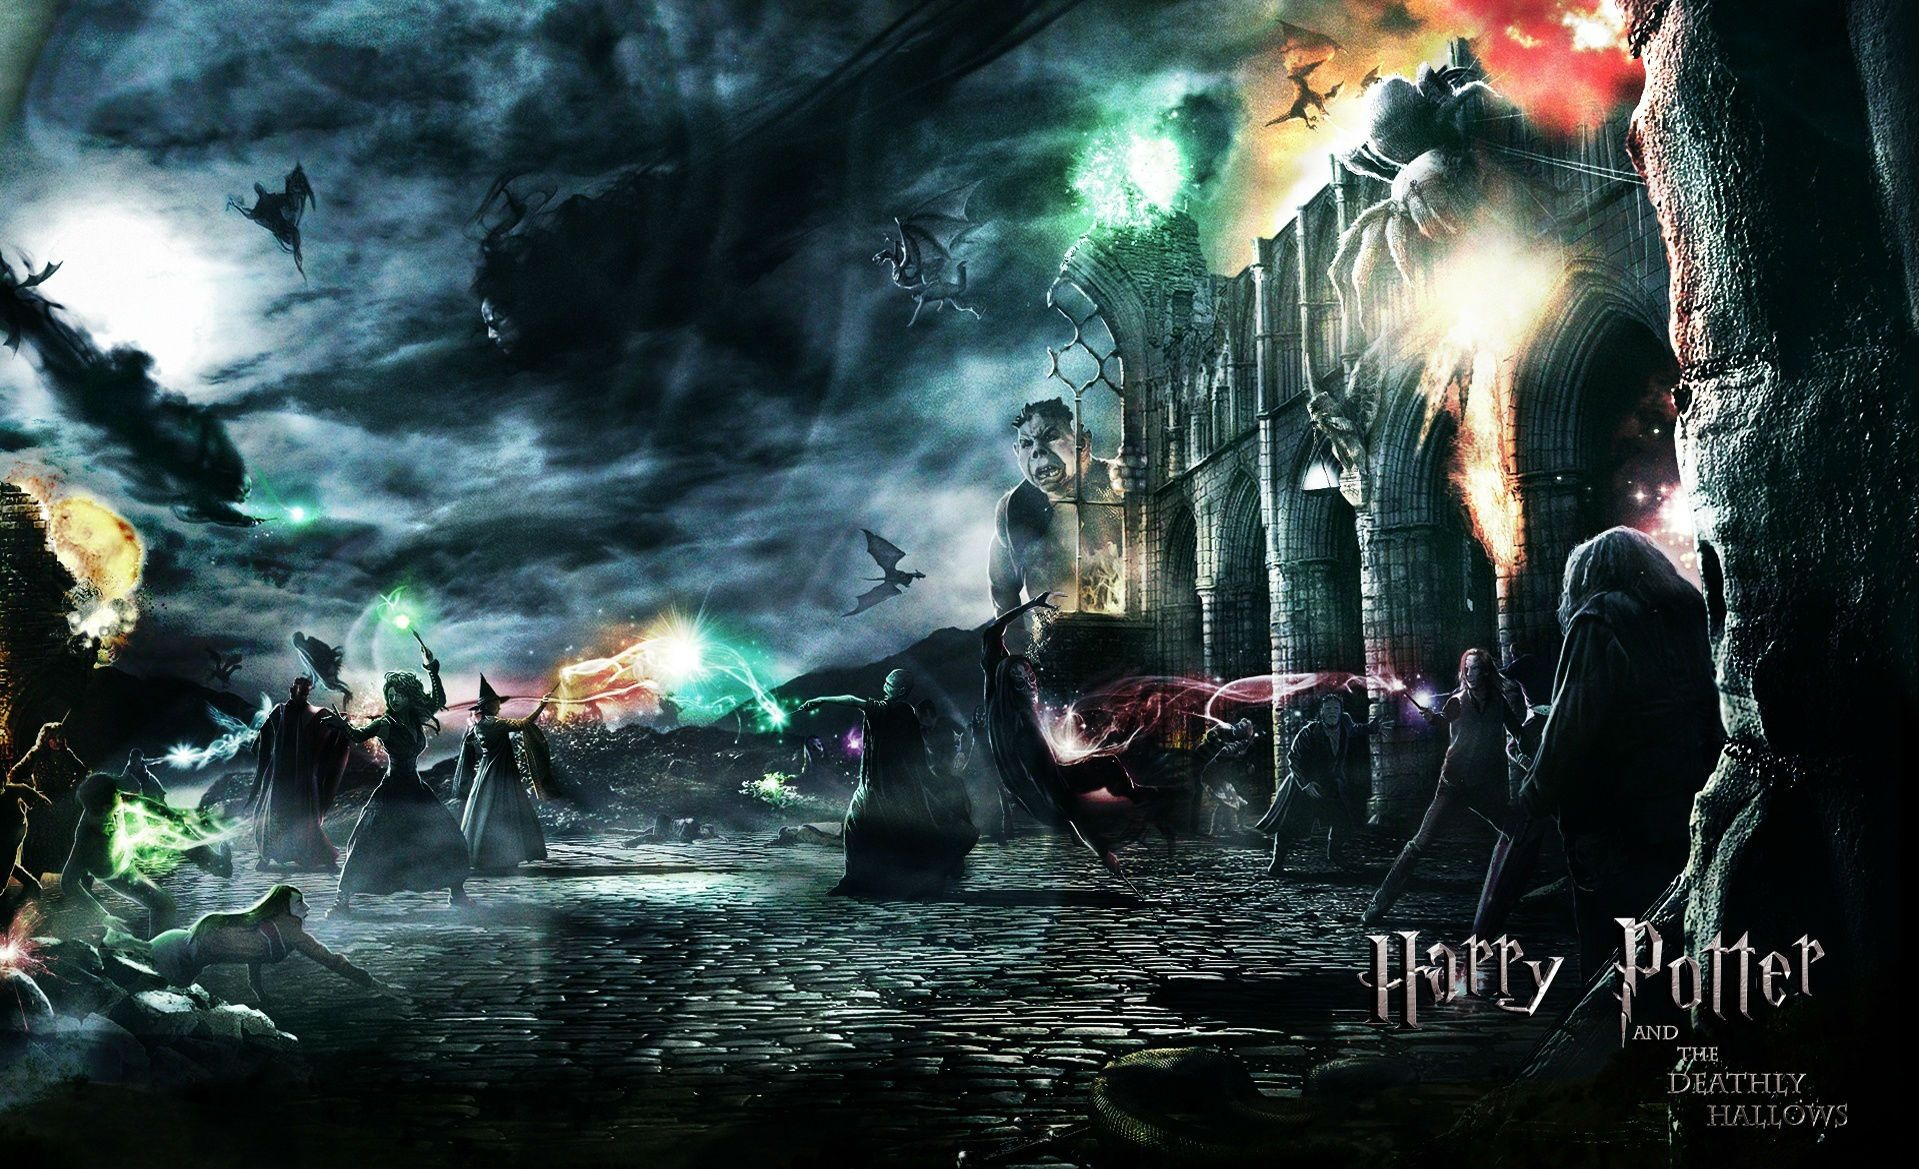 The Best Harry Potter Wallpaper Hd